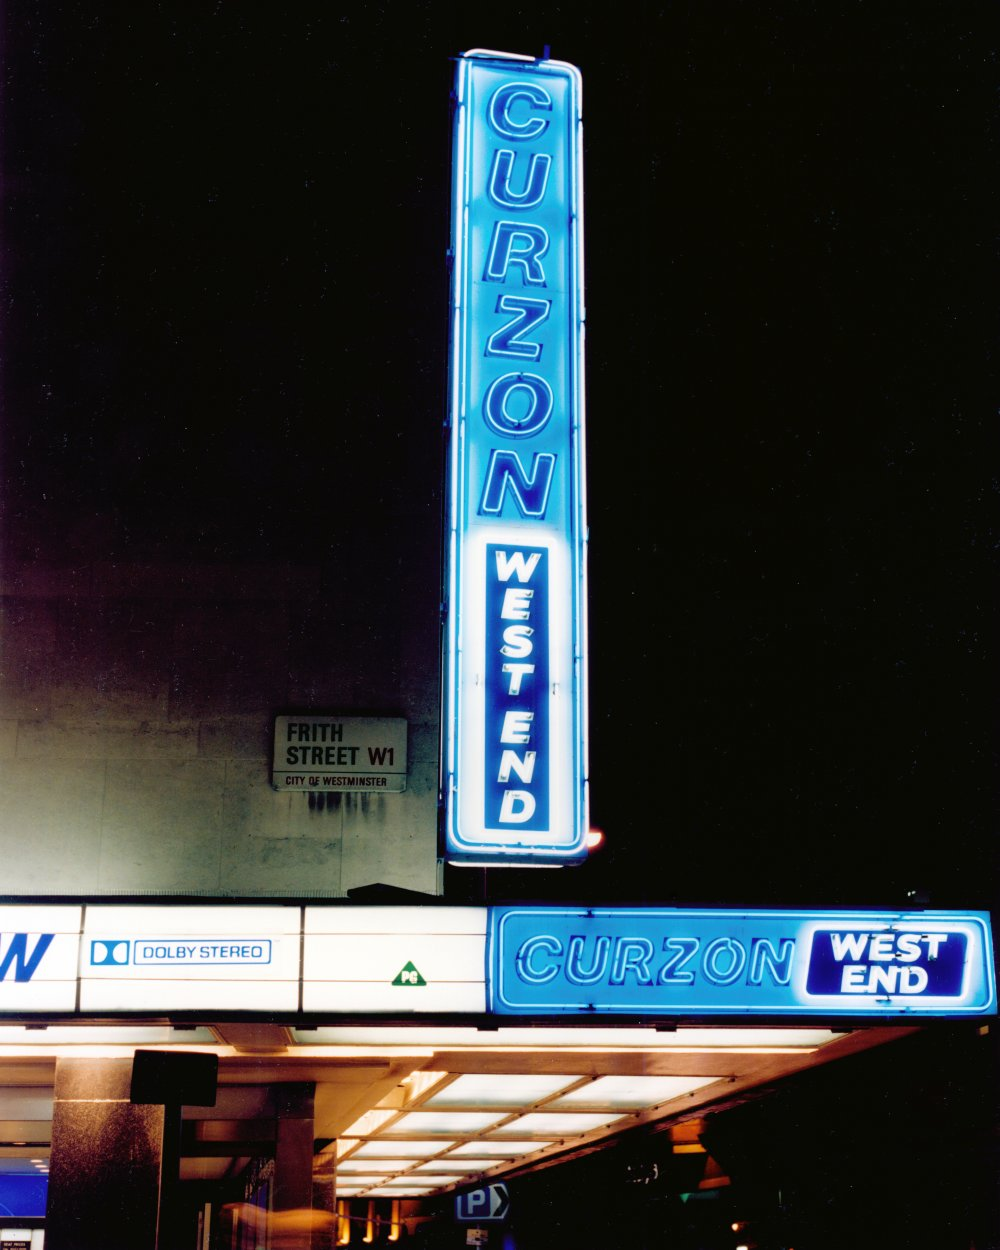 Curzon West End (now Curzon Soho), London, 1985